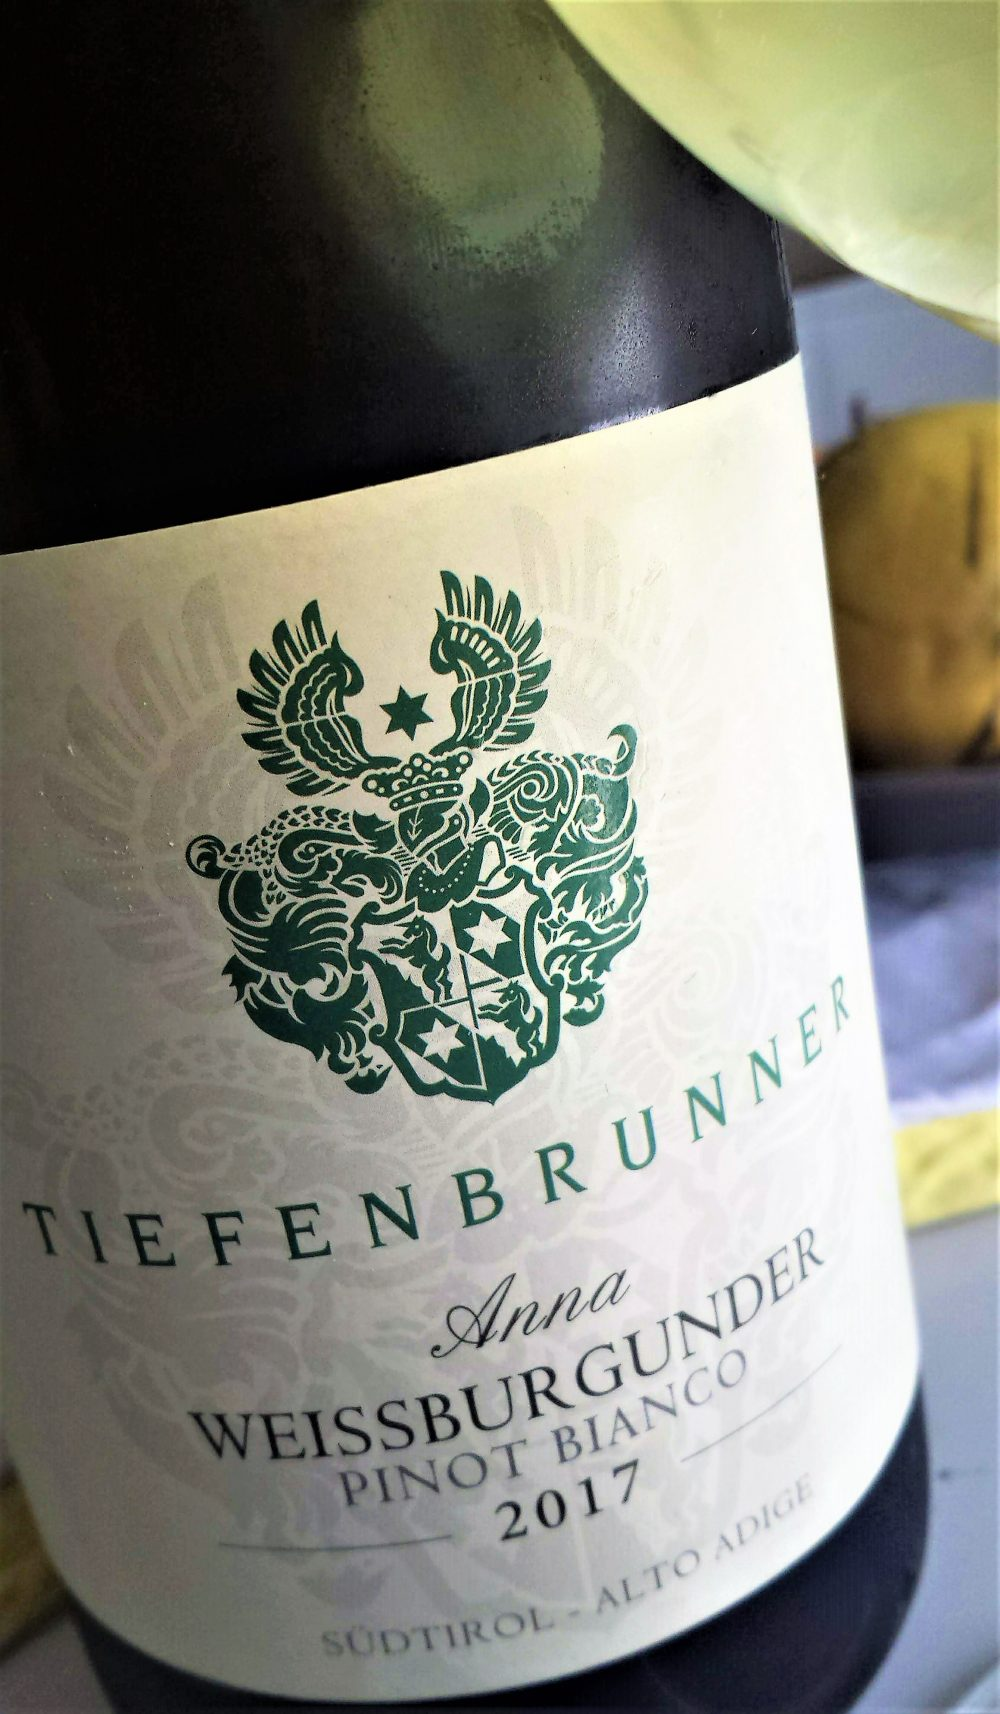 A.A. Pinot Bianco Anna 2017, Tiefenbrunner